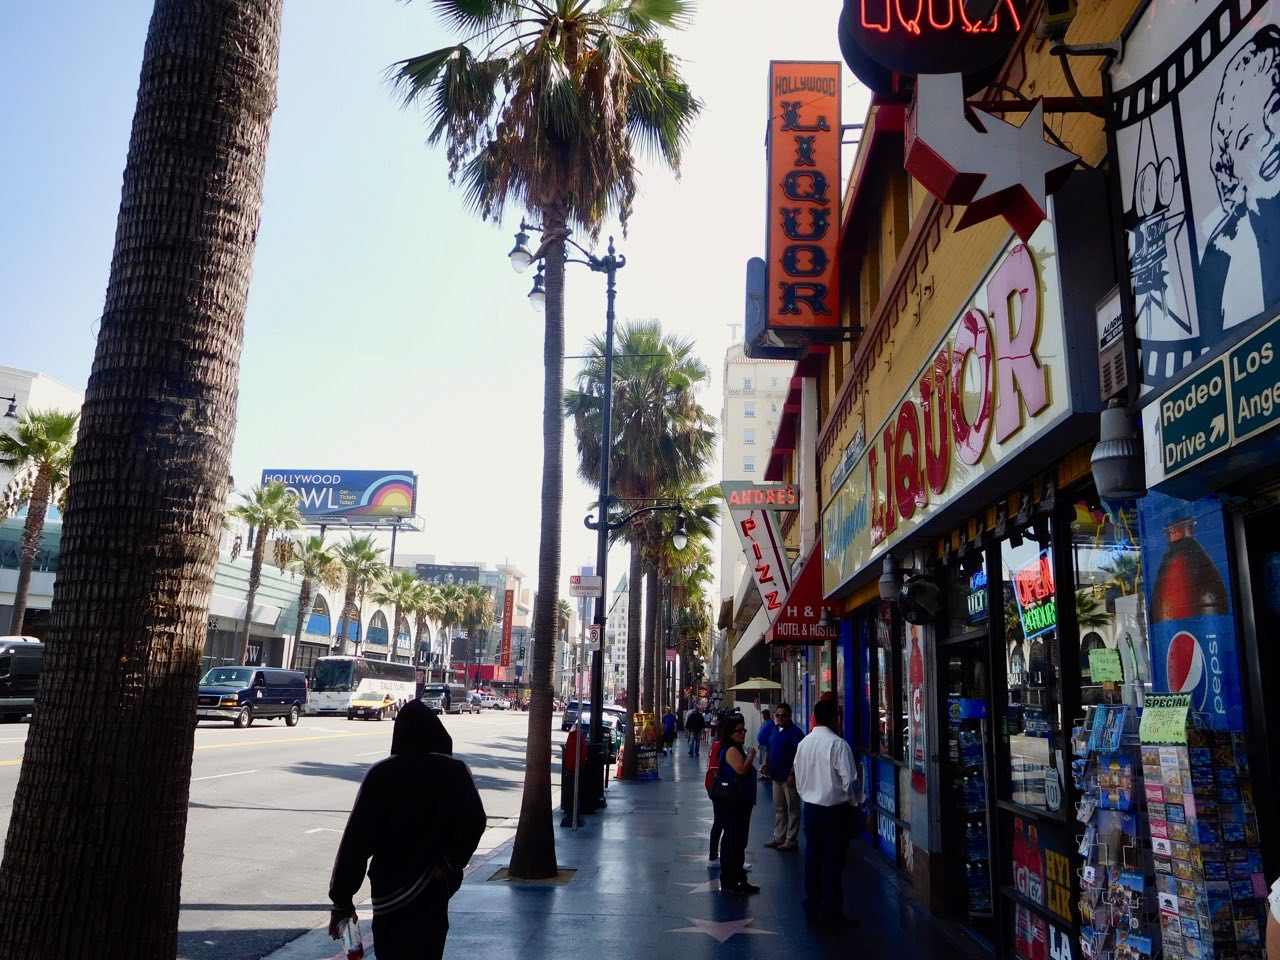 3 jours à Hollywood - Hollywood Boulevard (2)